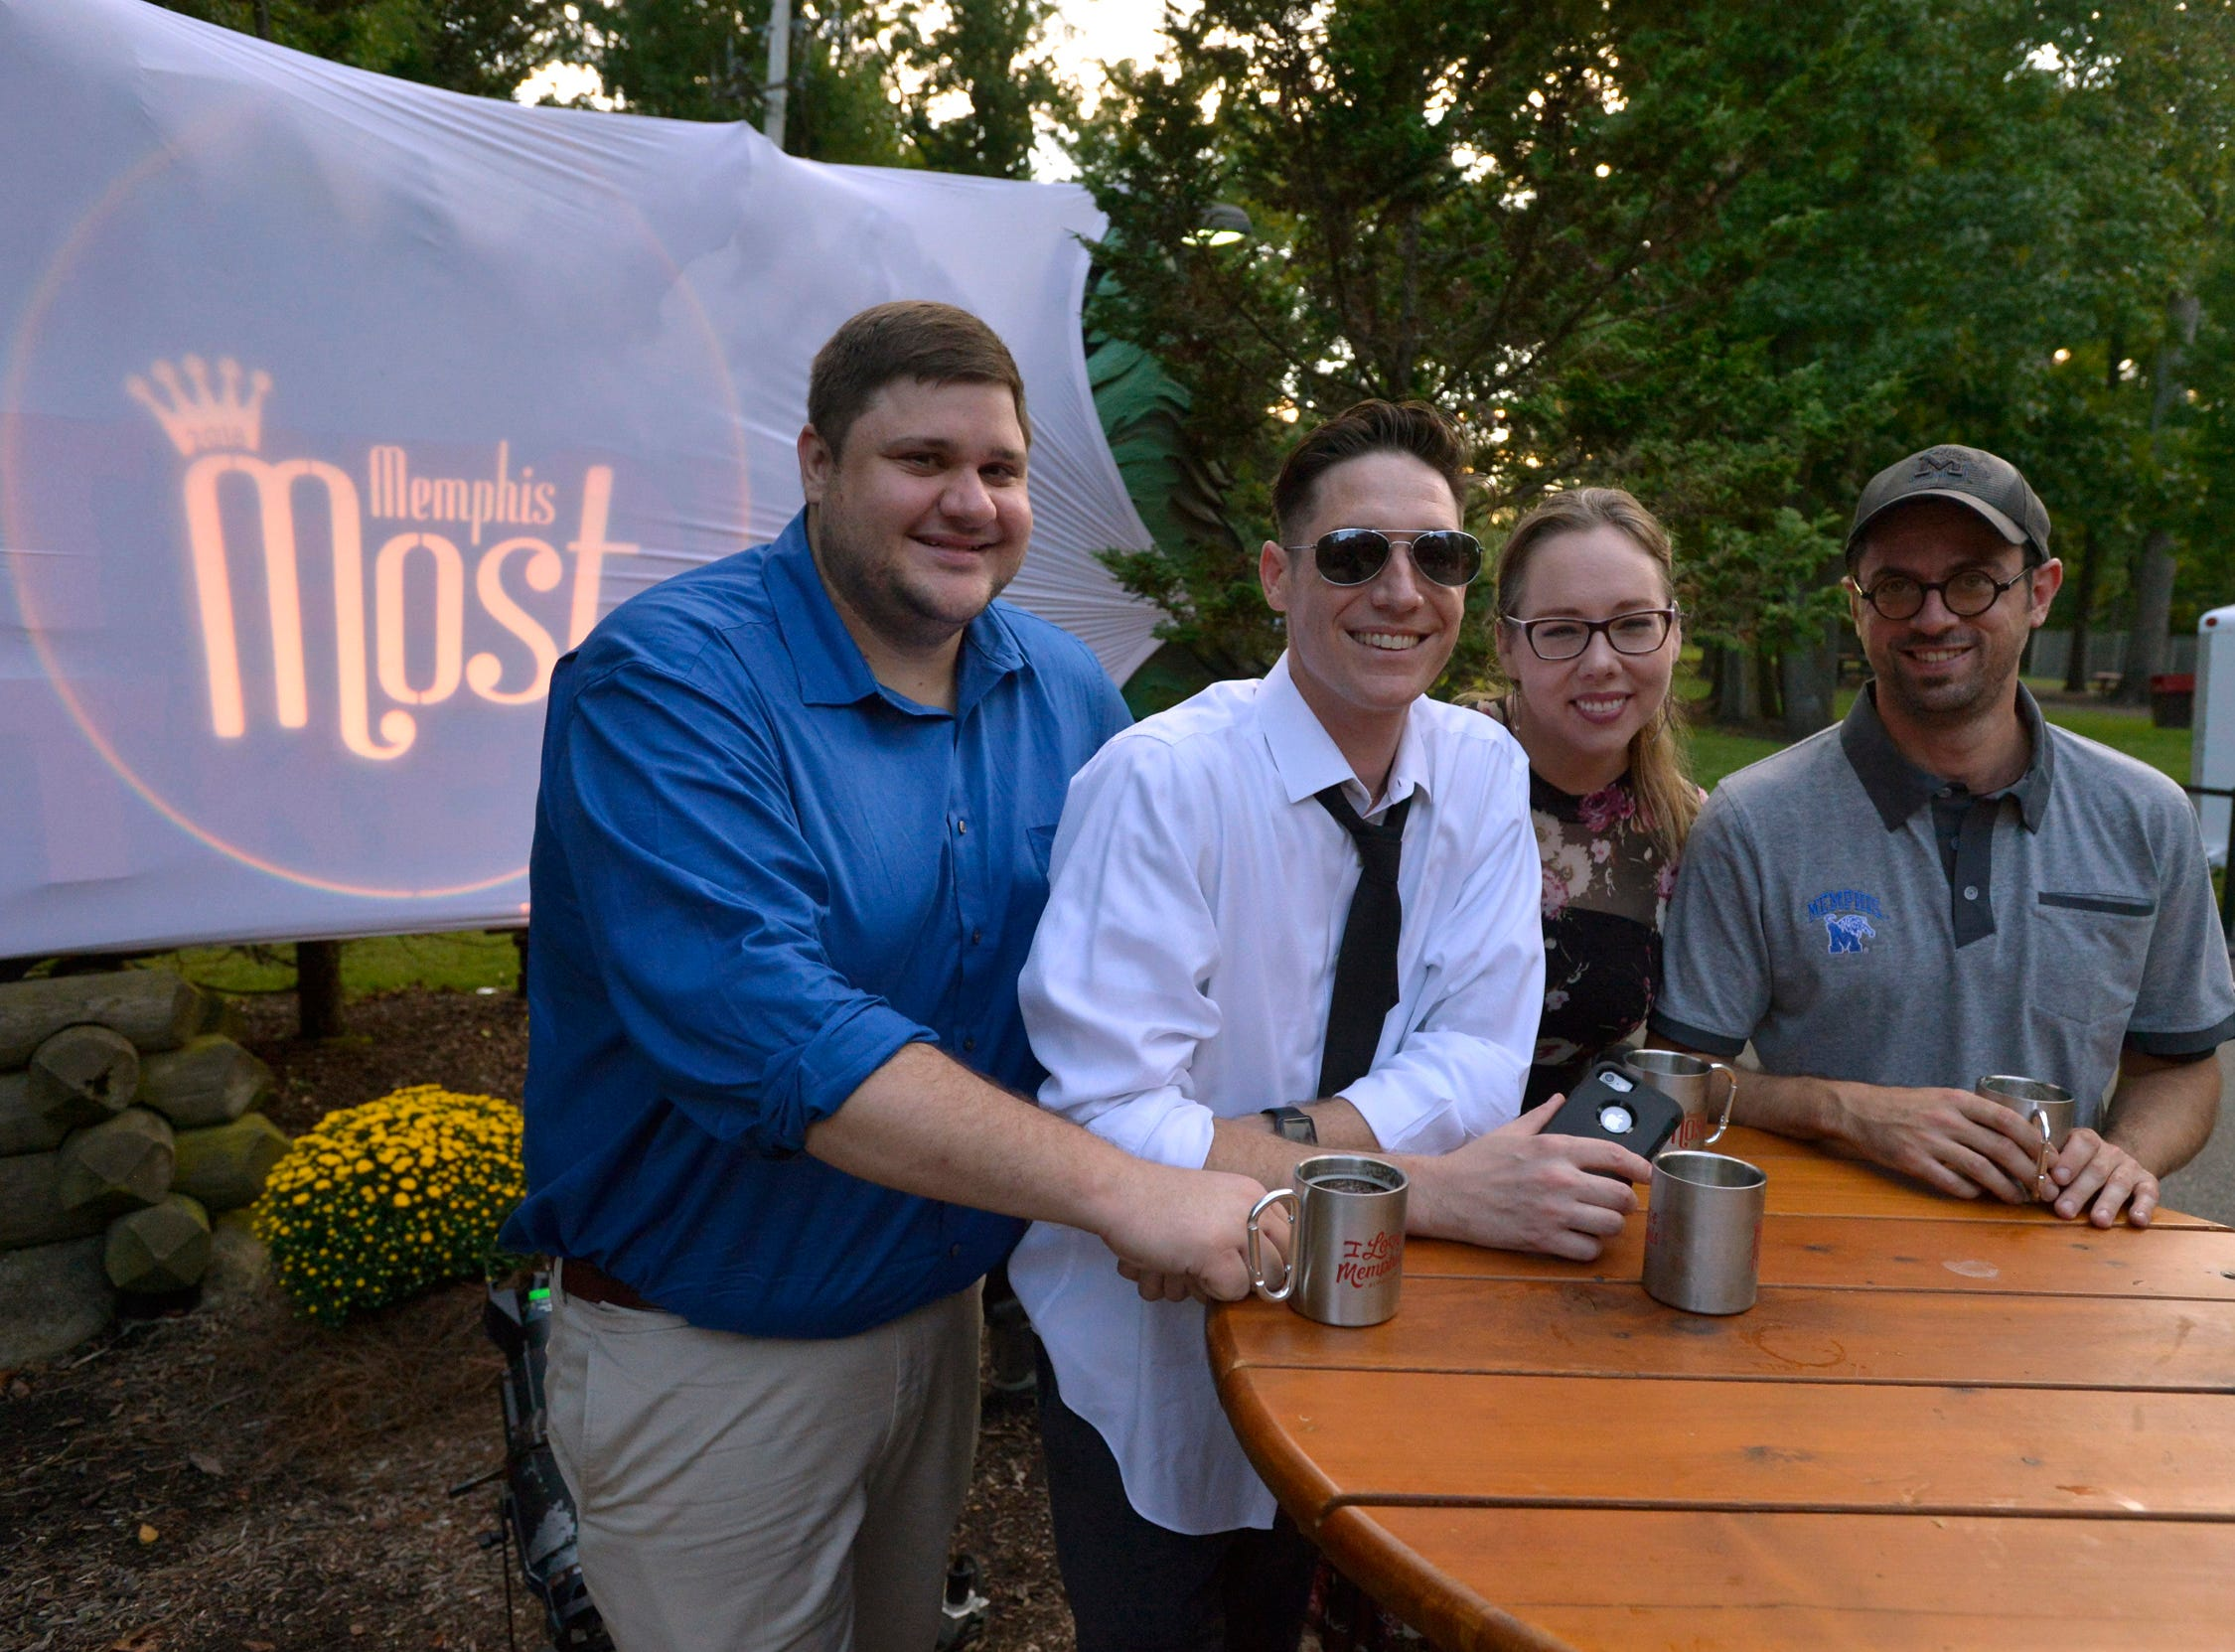 September 13, 2018 - Derick Maxwell, (from left) Latty, Rebecca Bishop, and Jason Stewart, representing Flinn Broadcasting, pose for a photo during the 2018 Memphis Most awards party at Teton Trek in the Memphis Zoo. (Brandon Dill for The Commercial Appeal)